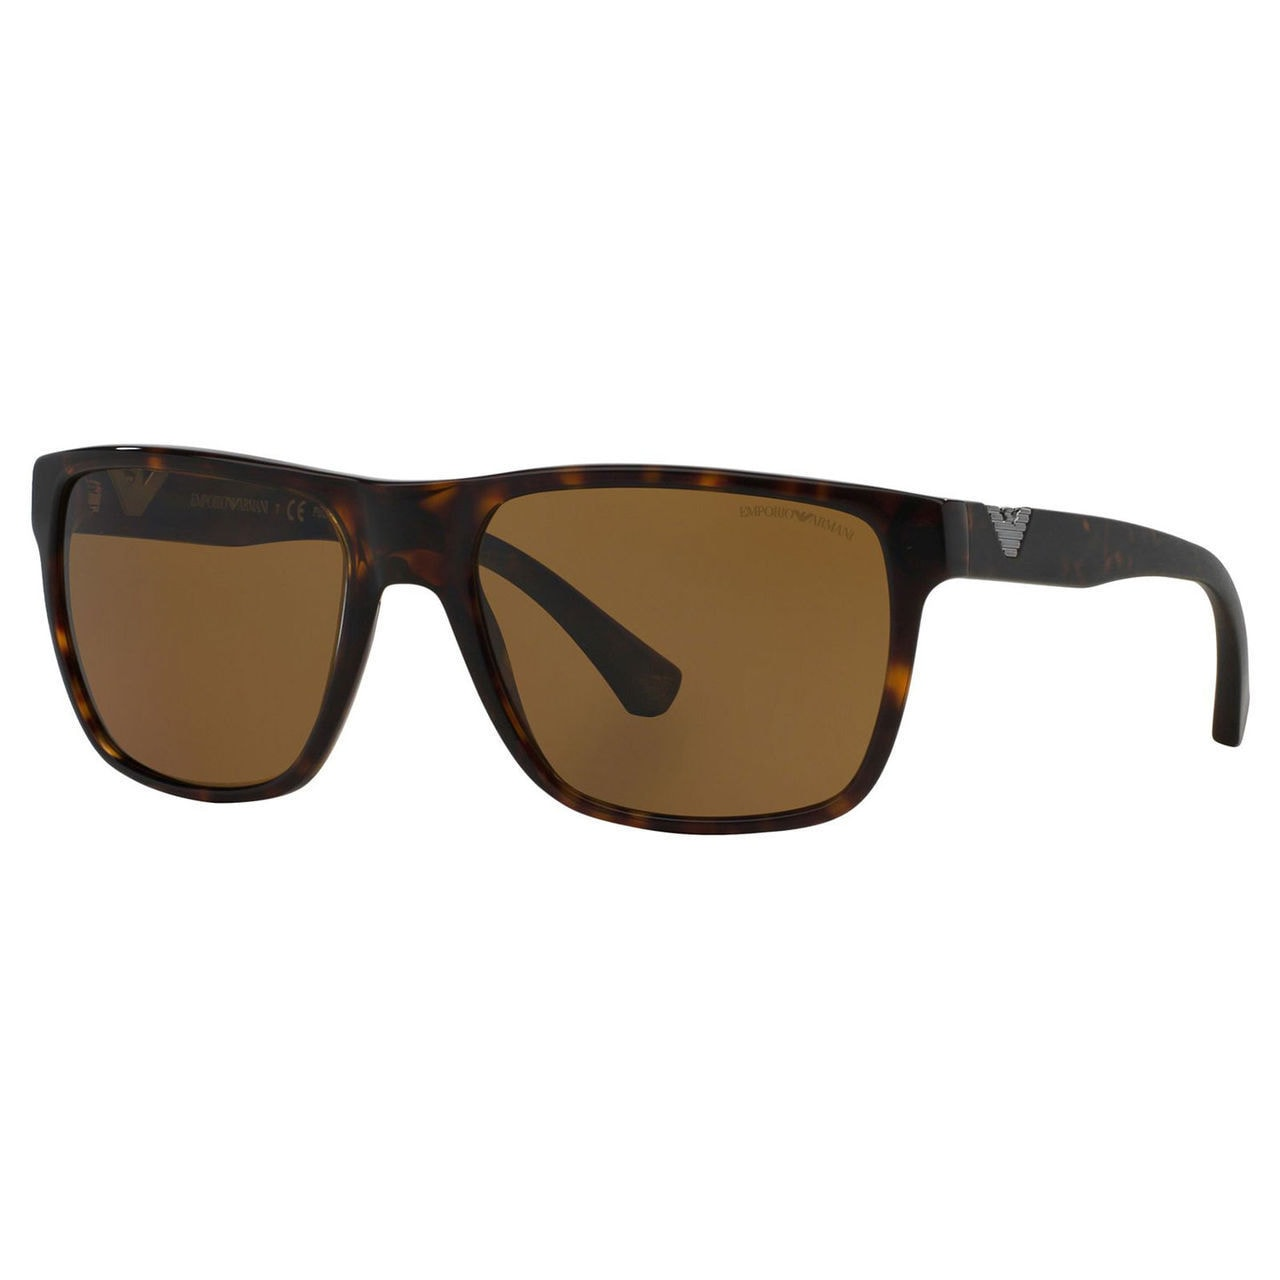 af2fa3f7e4d Shop Emporio Armani Men s EA4035 Plastic Square Polarized Sunglasses -  Tortoise - Free Shipping Today - Overstock - 10324514